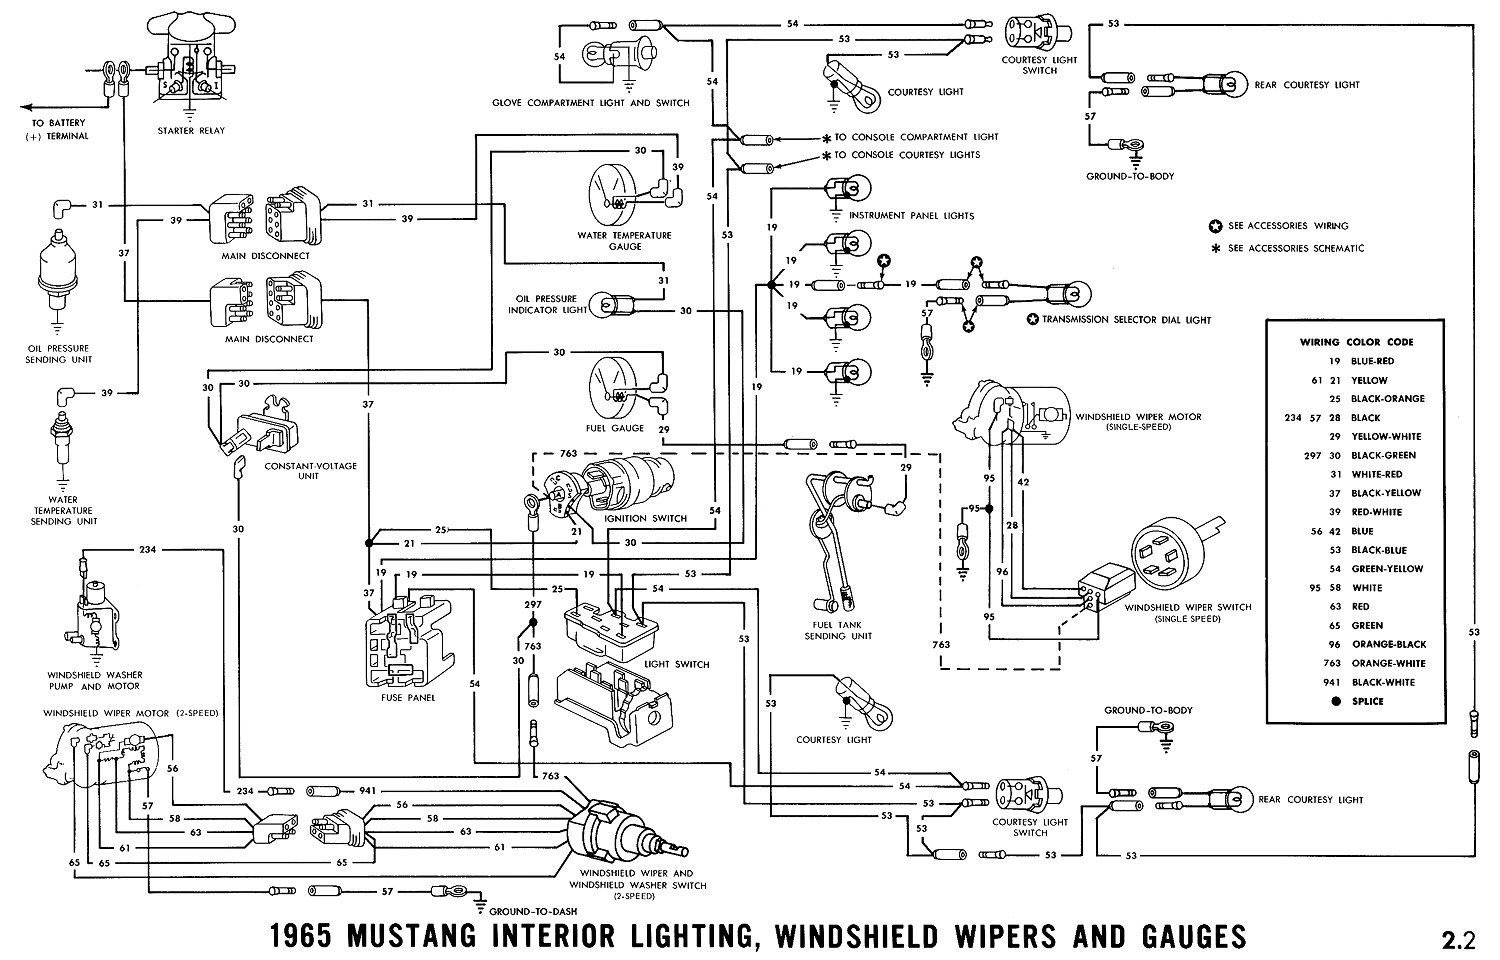 amp gauge wiring diagram 1965 corvette house wiring diagram symbols u2022 rh maxturner co 1969 Mustang Wiring Diagram 1978 Mustang Wiring Diagram